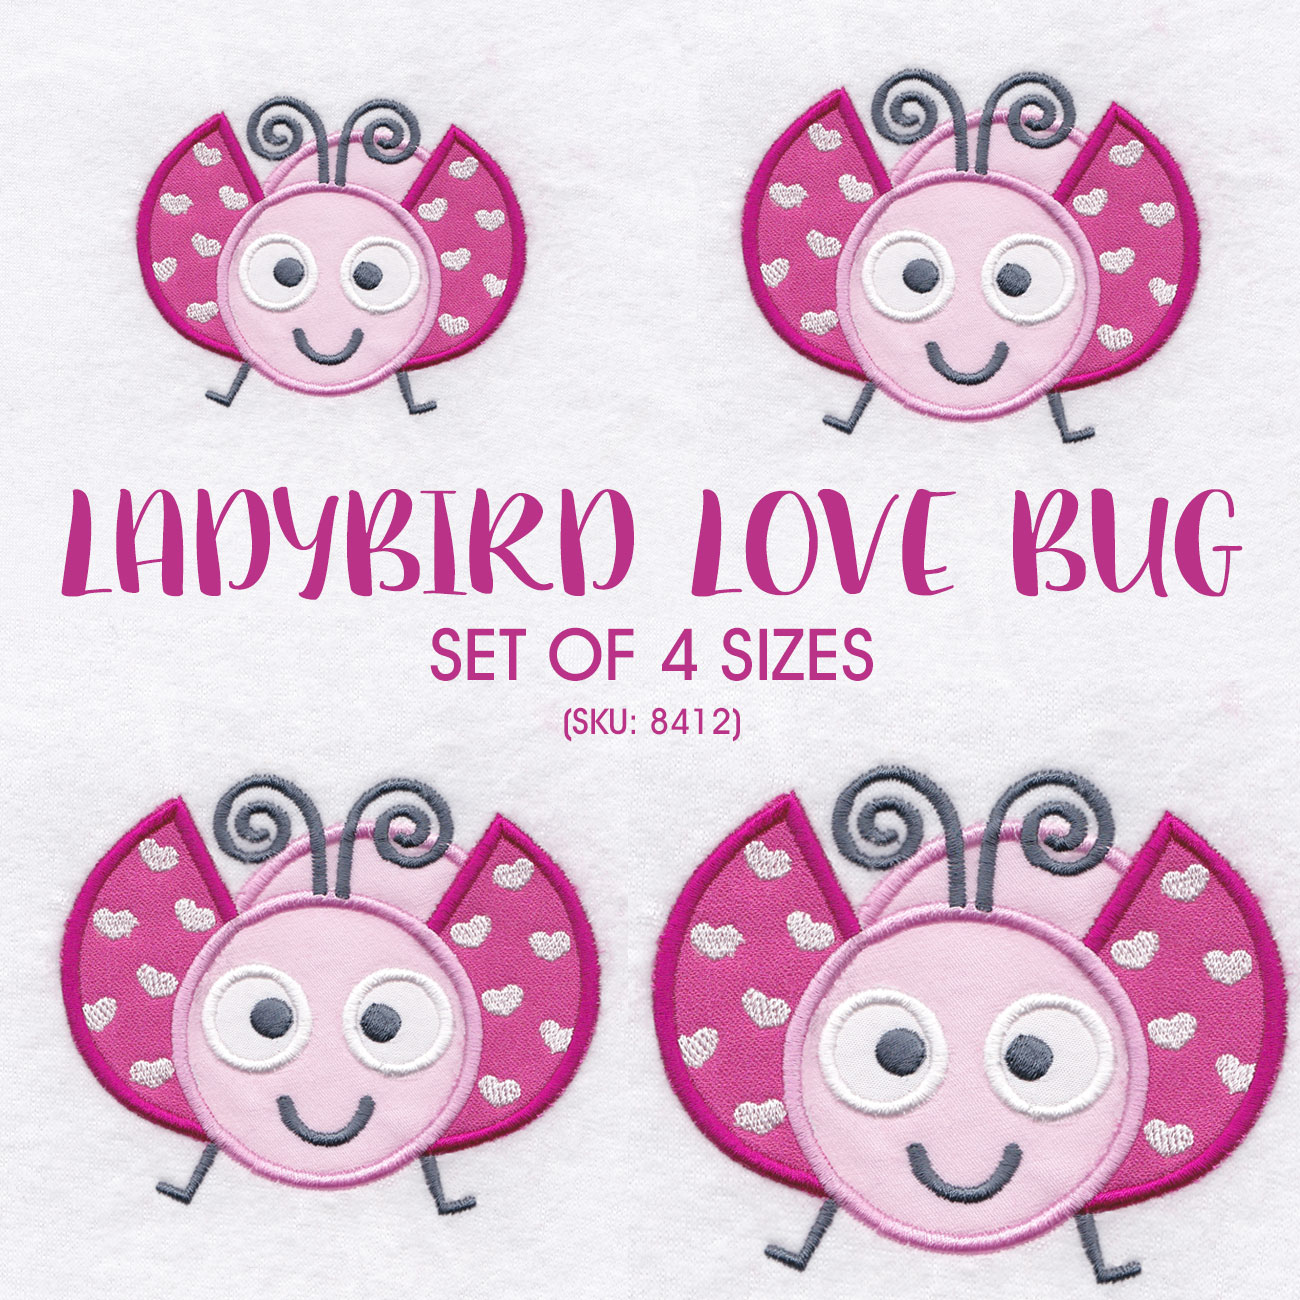 Ladybird Love Bug Applique Couture Princess Embroidery